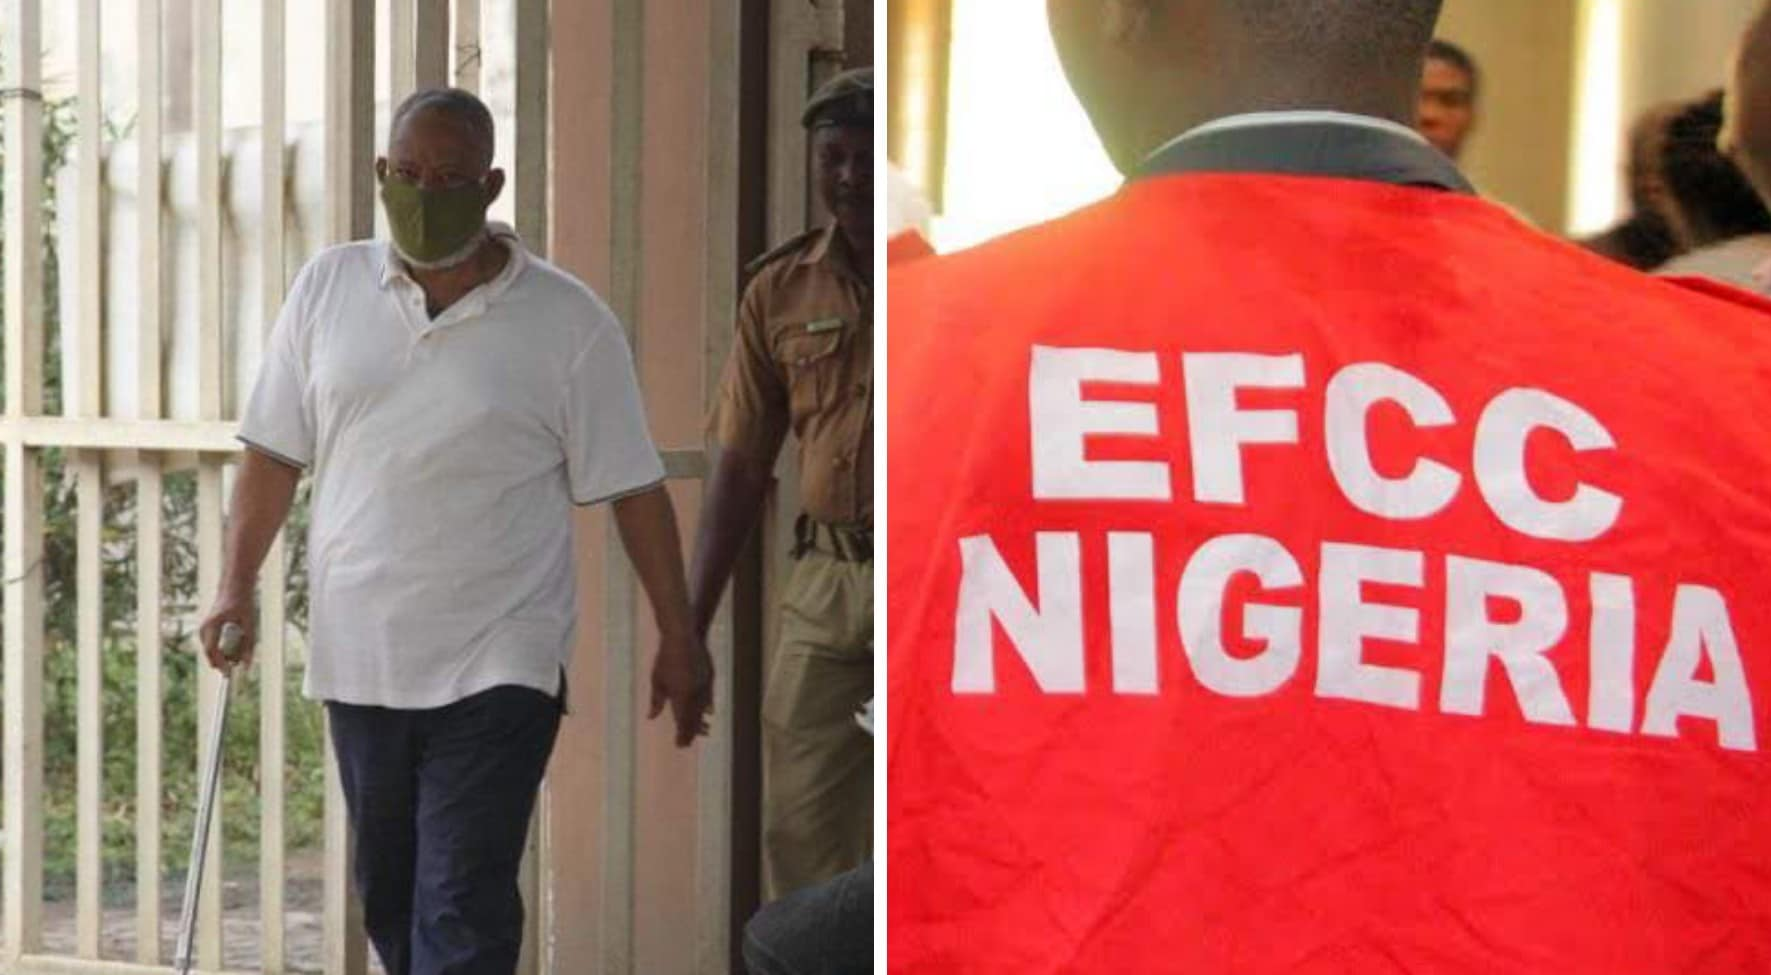 Fake Oil Merchant Jailed 21 Years Over N37.6m Fraud In Lagos The Untame News